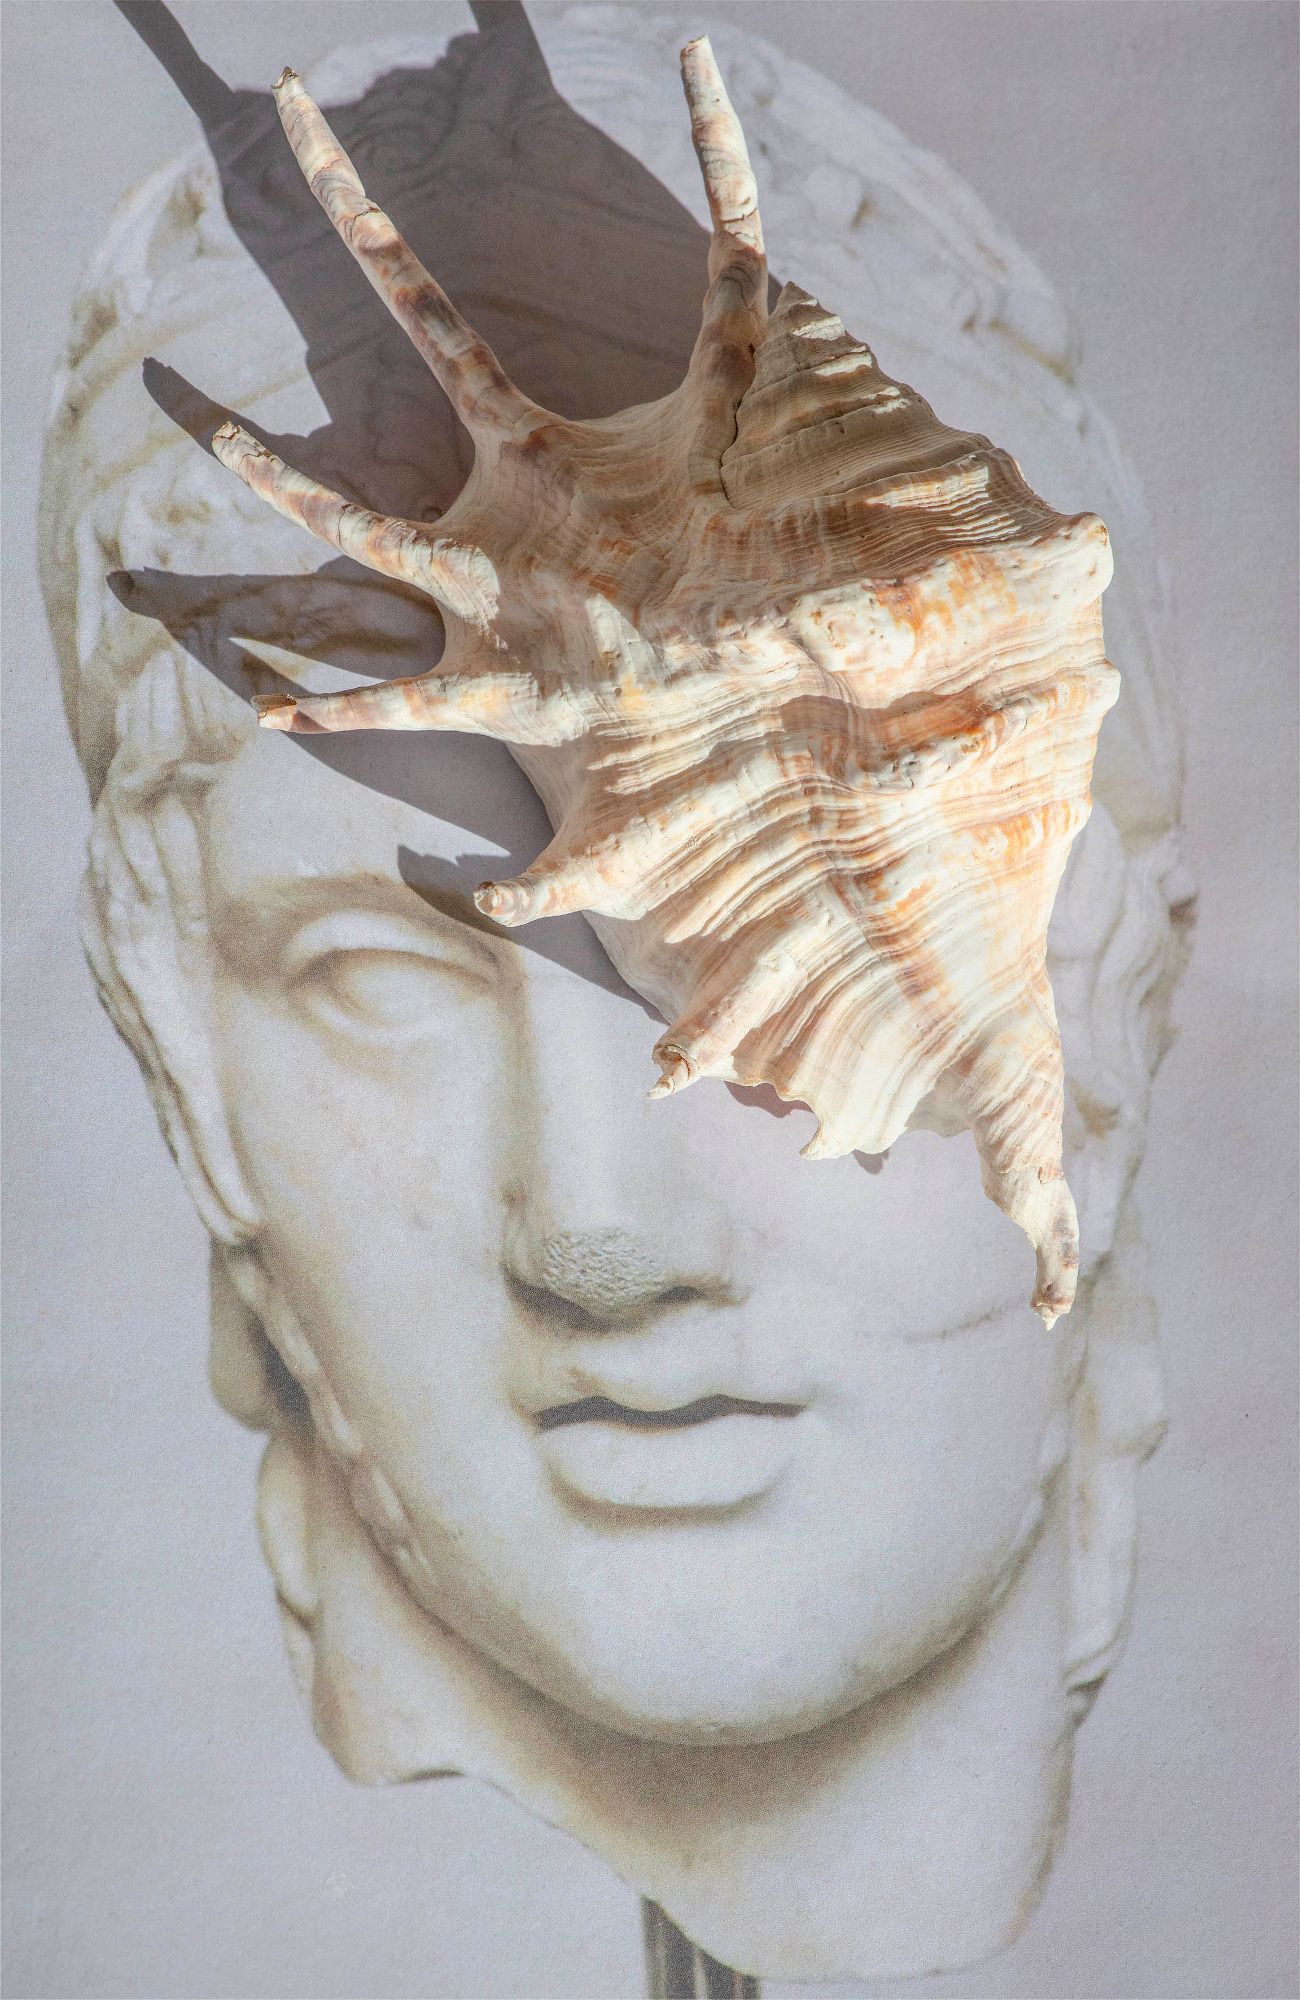 James Tunks, Lambis Lambis Shell + Head of Ares, 2020, Inkjet Print, 152 x 101 cm, framed, Ed. 3